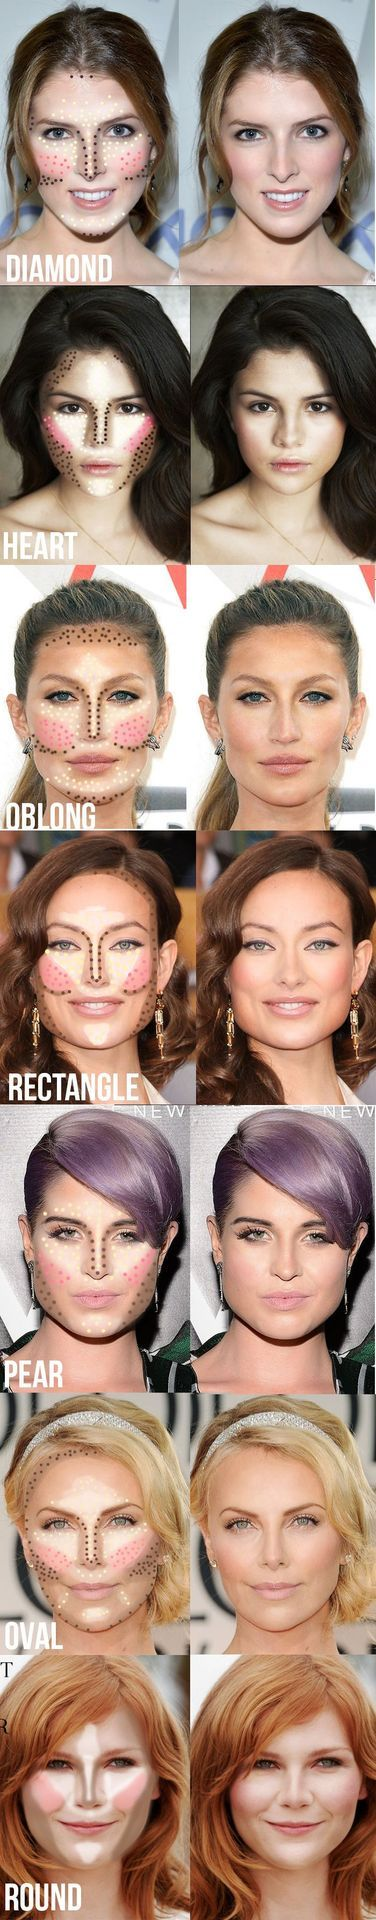 Highlighting and contouring guide for your face shape! It really makesa difference!